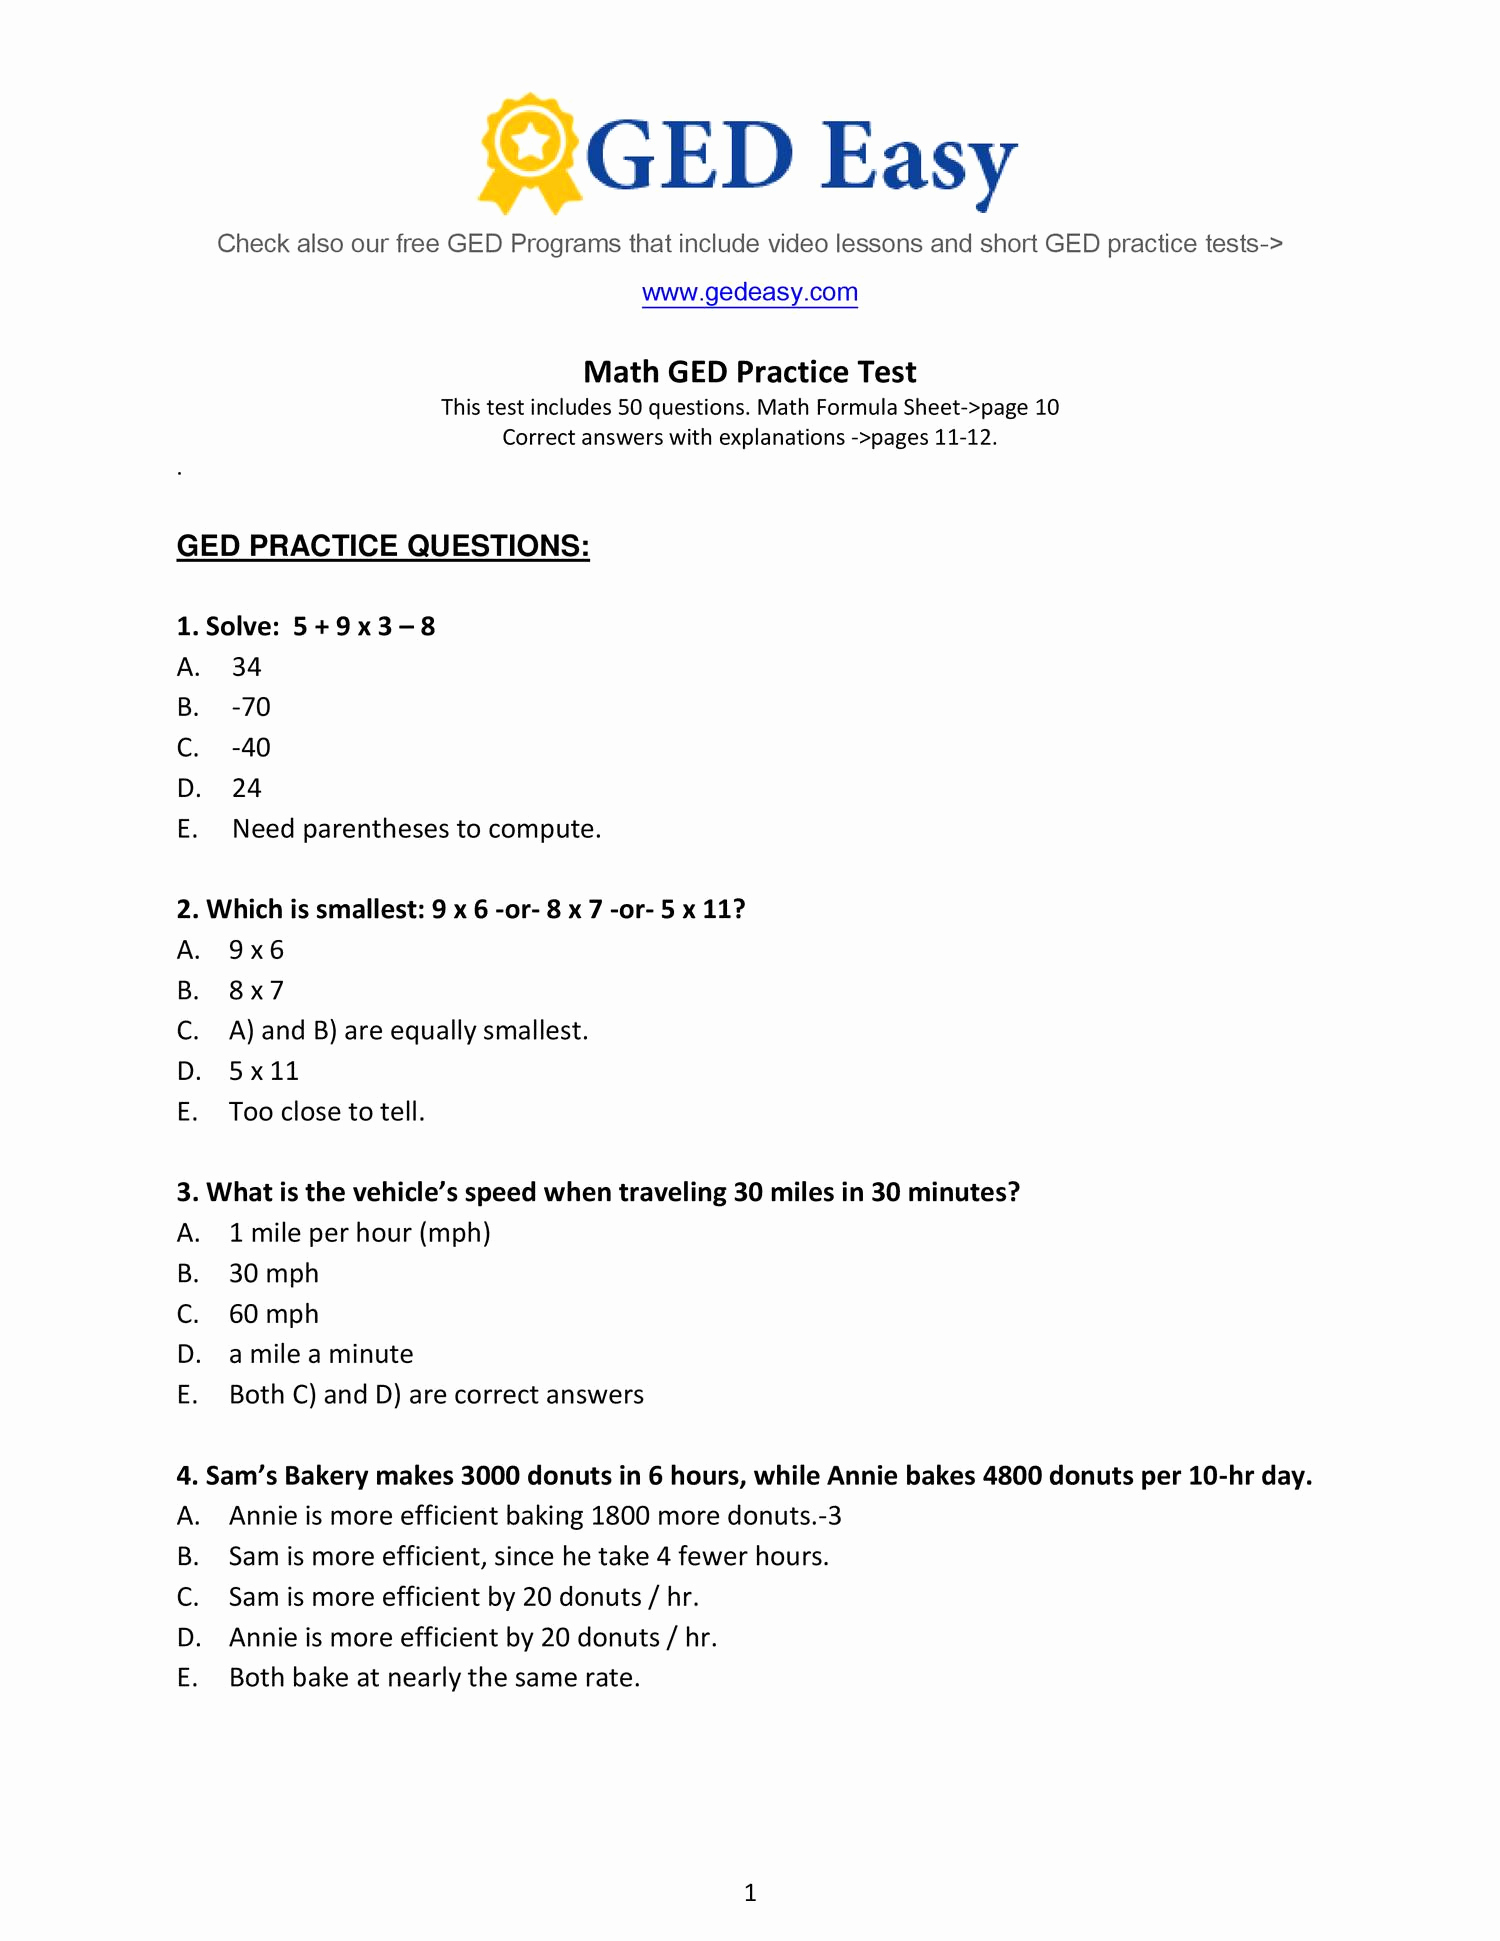 Ged Math Practice Test 2016 Awesome Ged Test Preparation Materials - Free Printable Ged Practice Test With Answer Key 2017